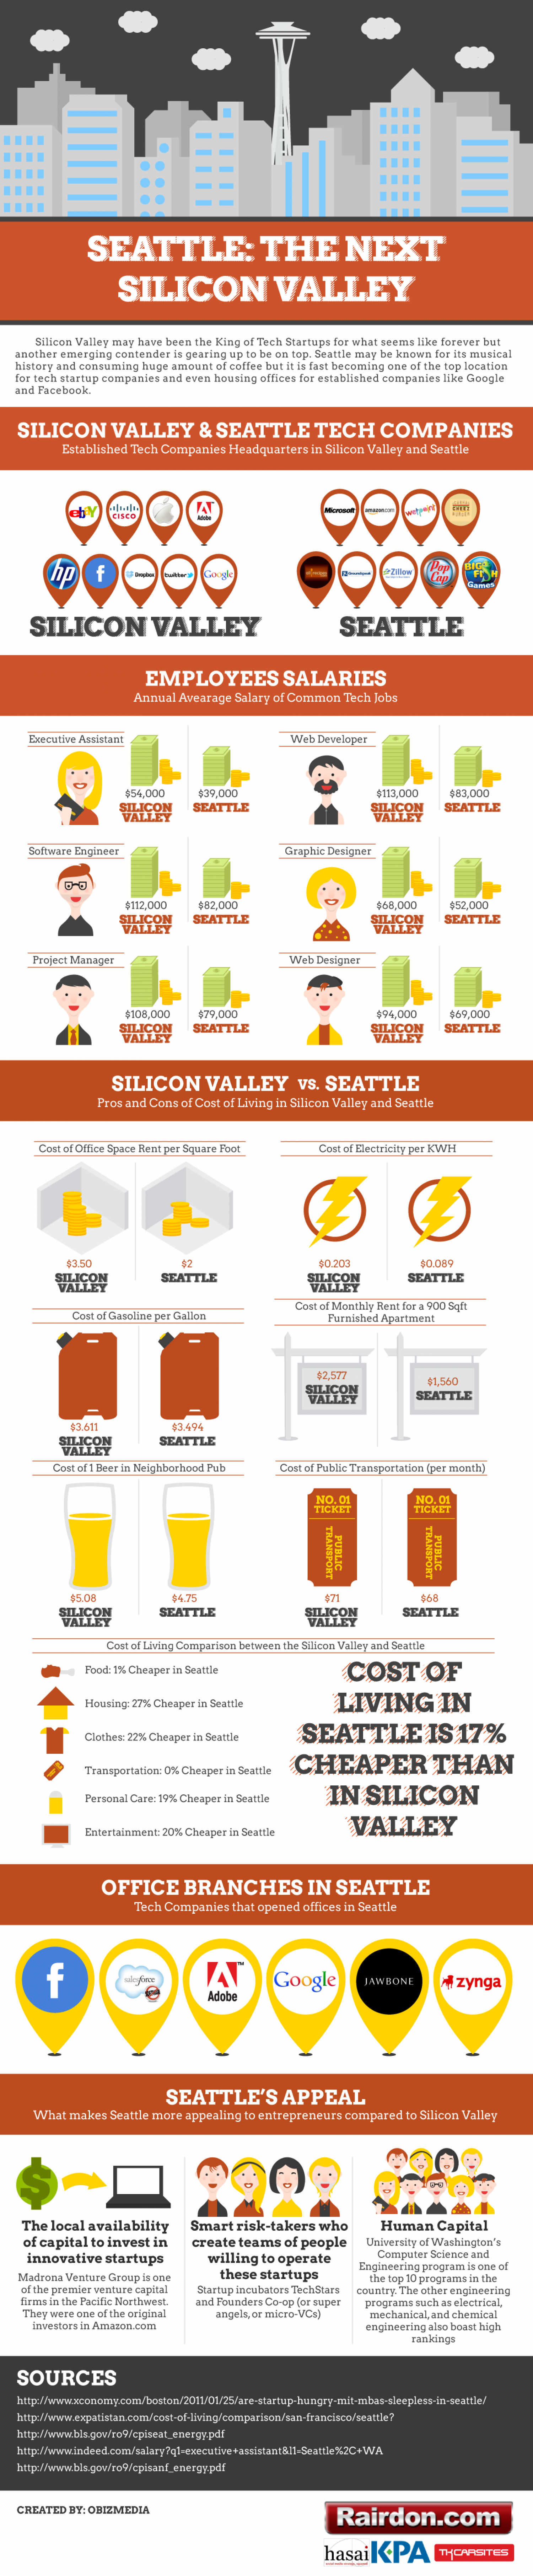 Seattle: The Next Silicon Valley Infographic